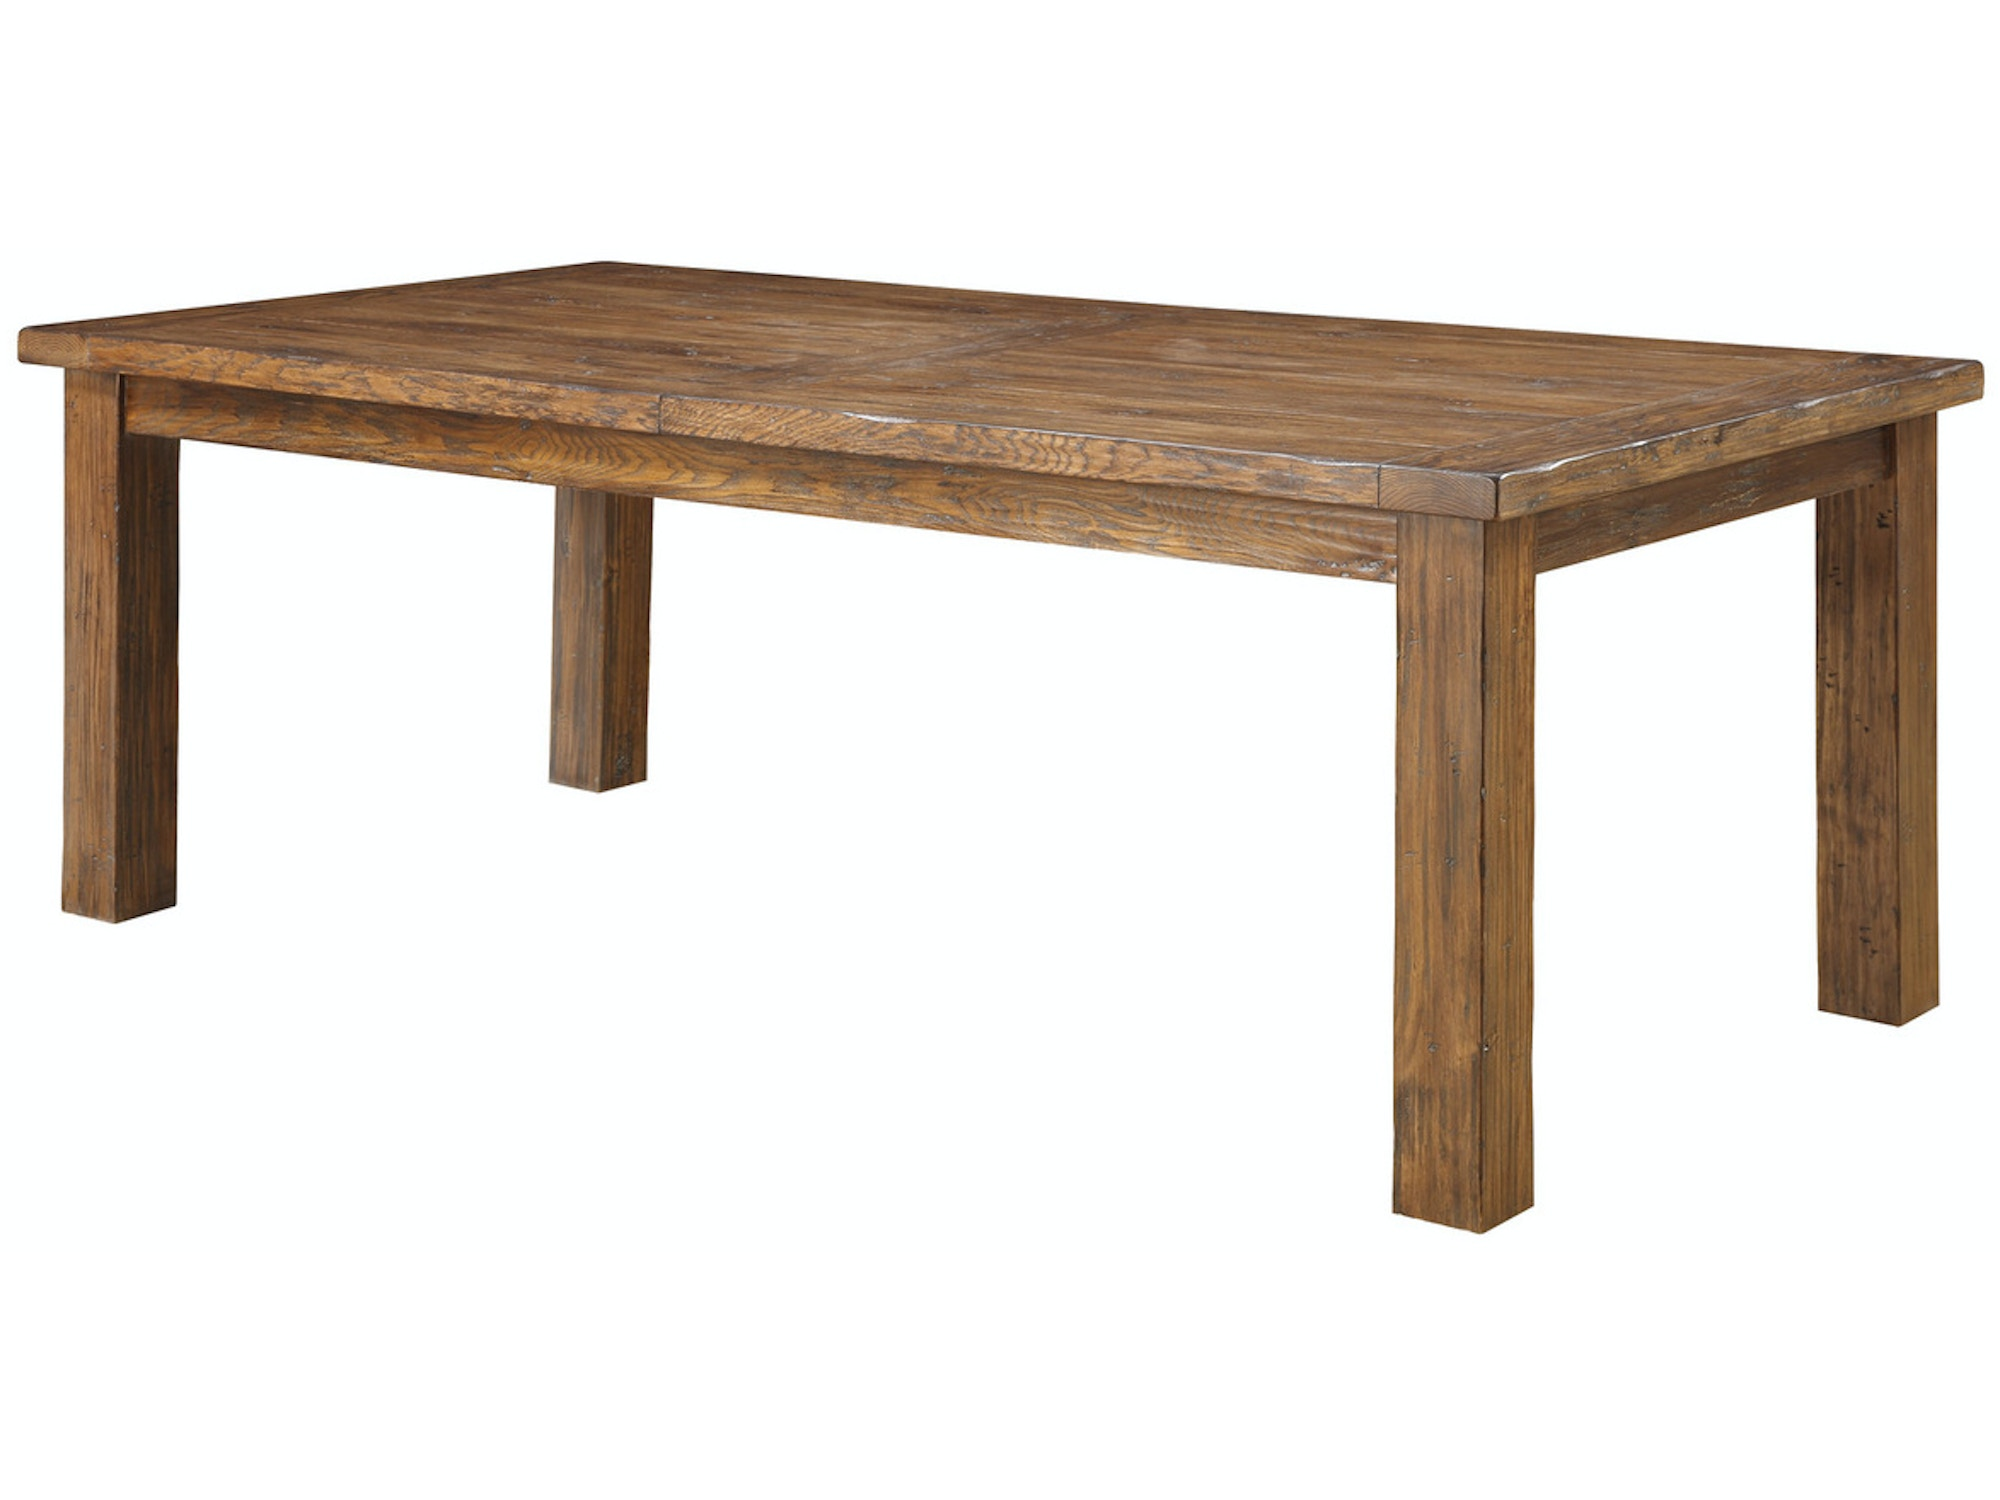 Chambers Creek Dining Table with Butterfly Leaf 054521